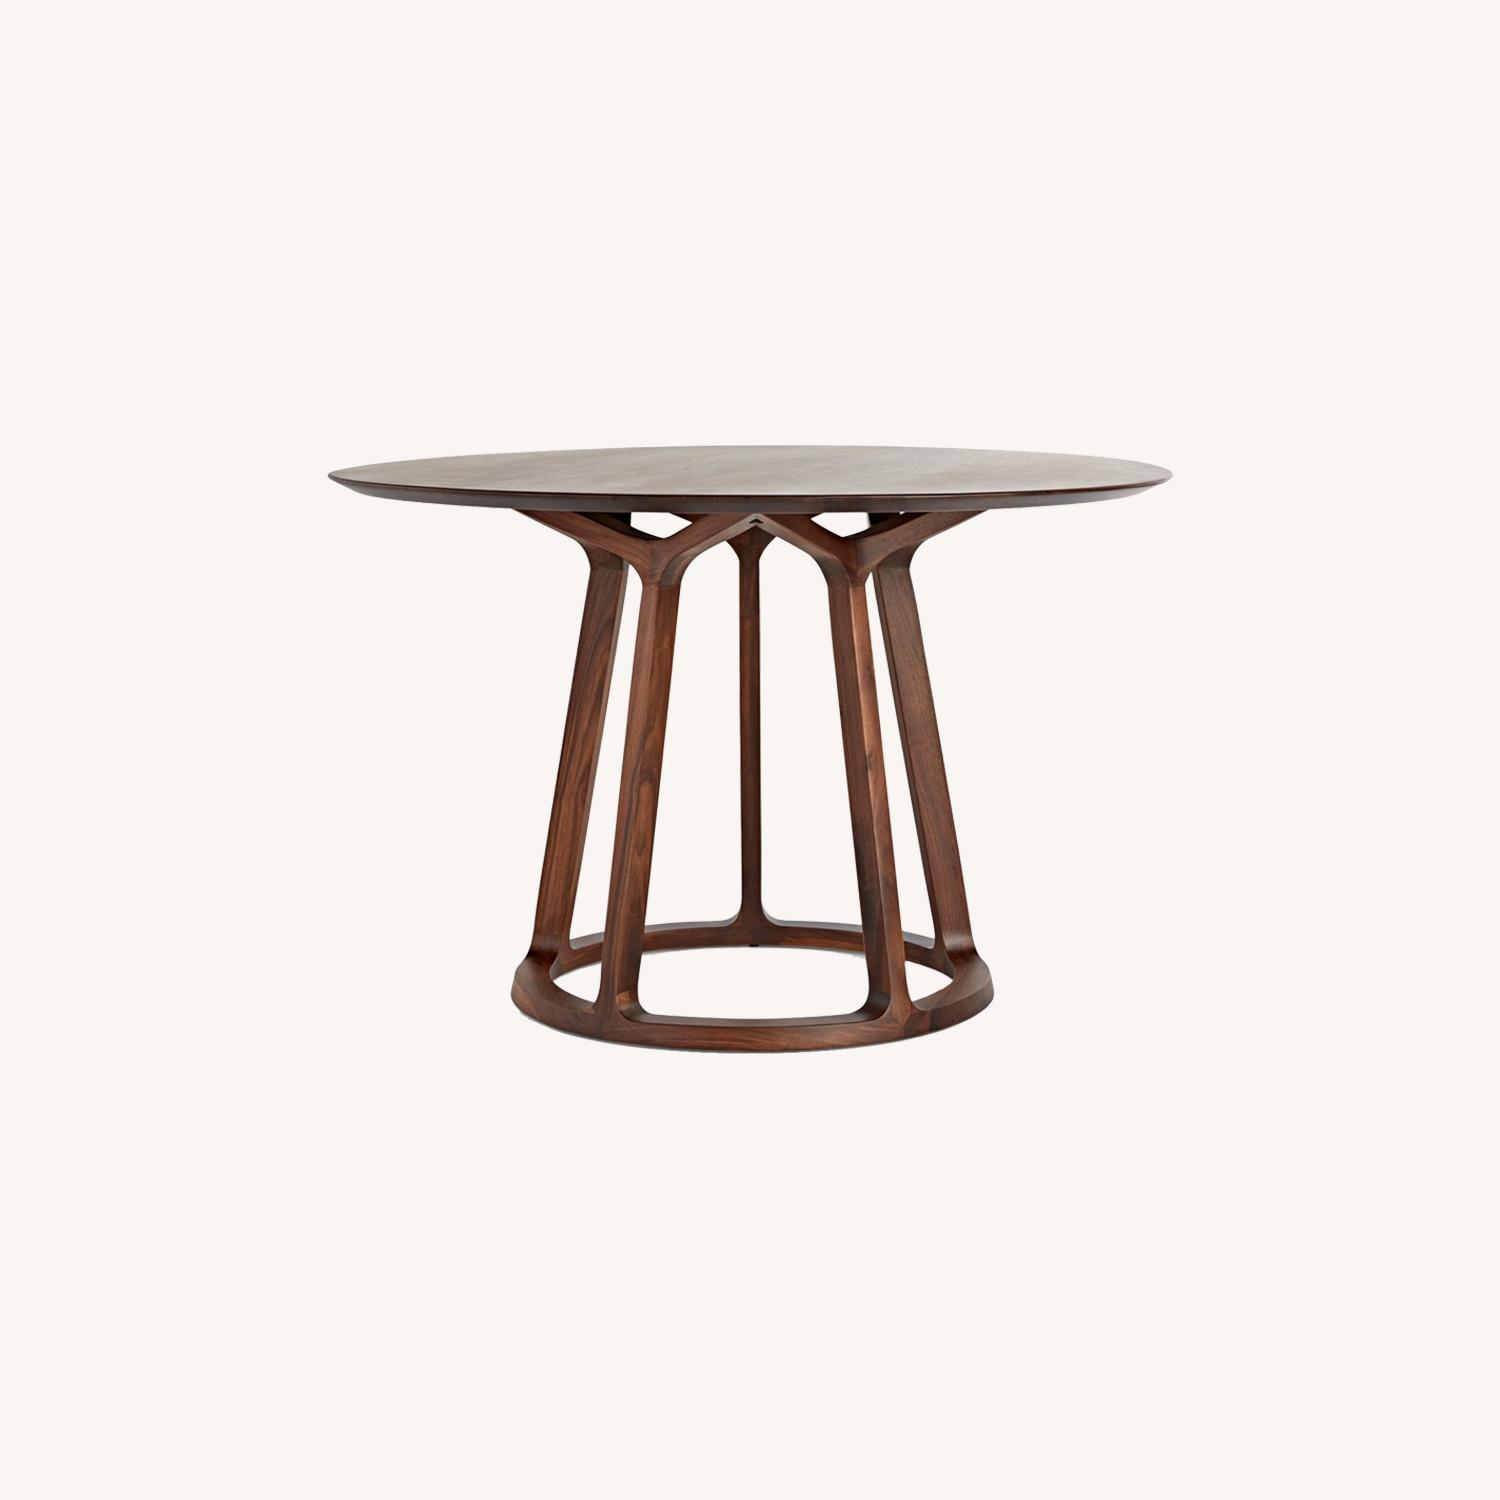 Rejuvenation Wood Modern Round Dining Table - image-0